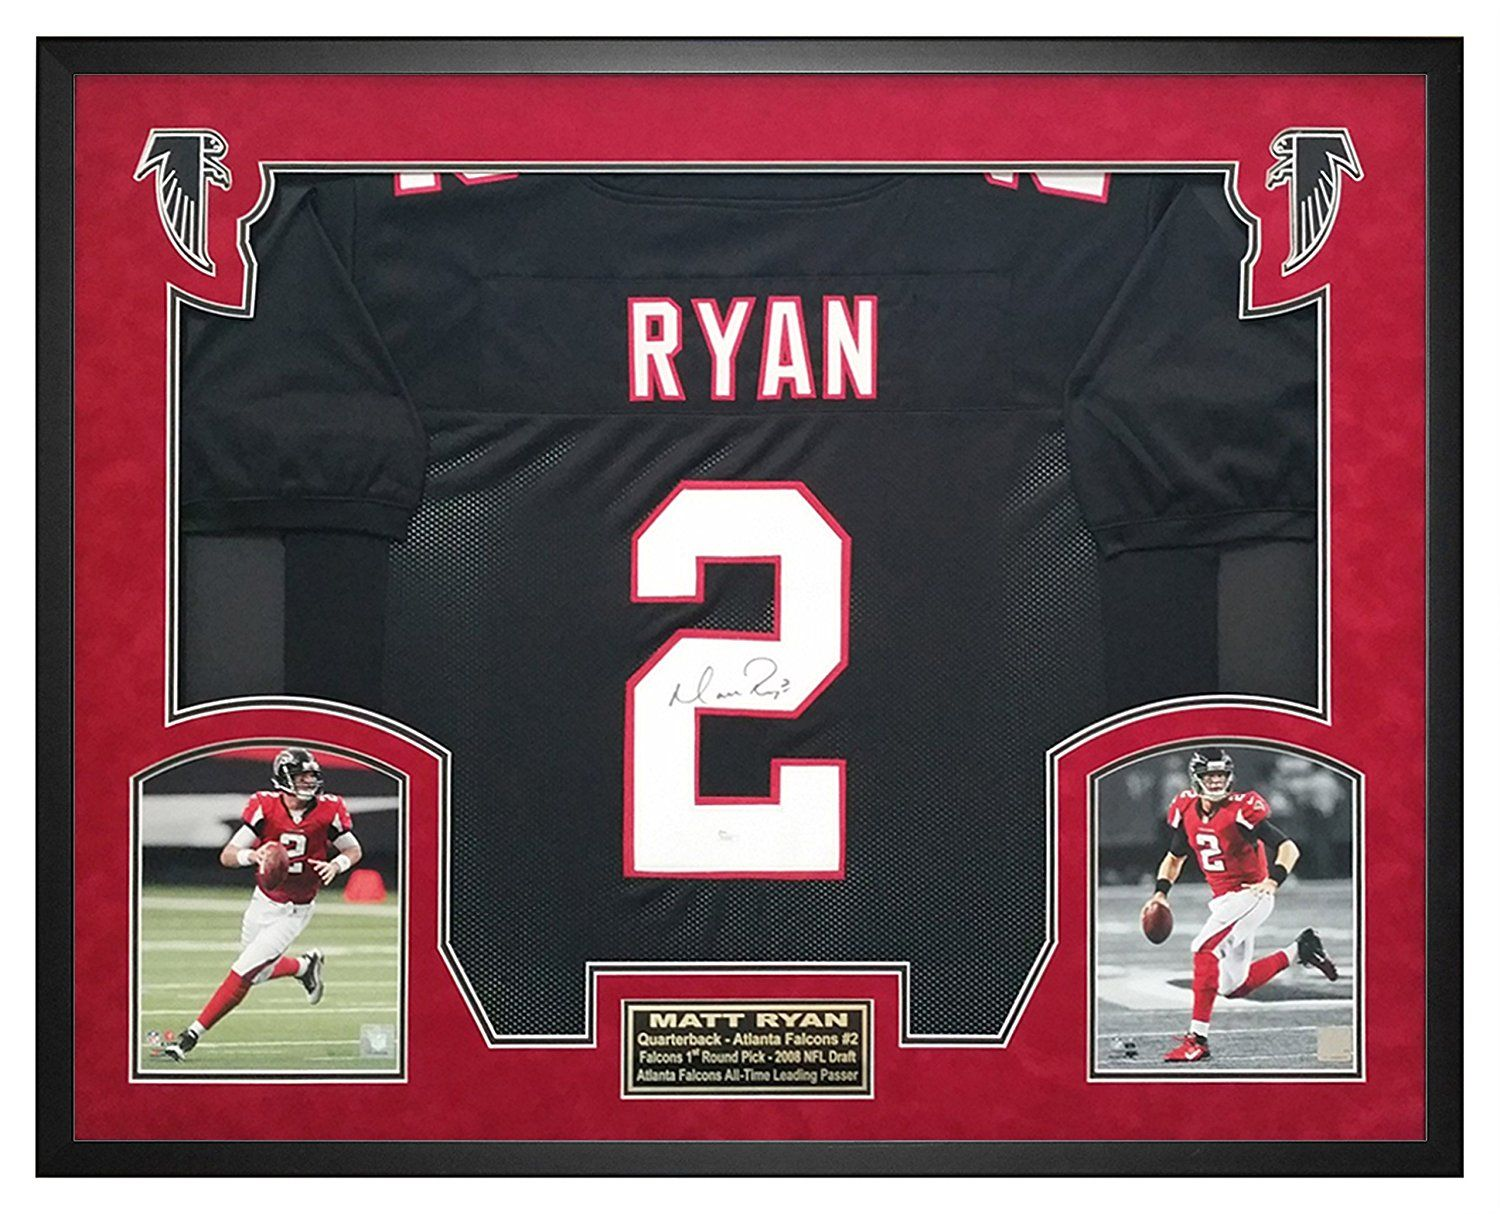 Matt Ryan Atlanta Falcons Autographed Jersey Custom Framed Shadow Box Jsa Certificate Of Authenticity Great For Any Atlanta Falcons Shadow Box Framed Jersey